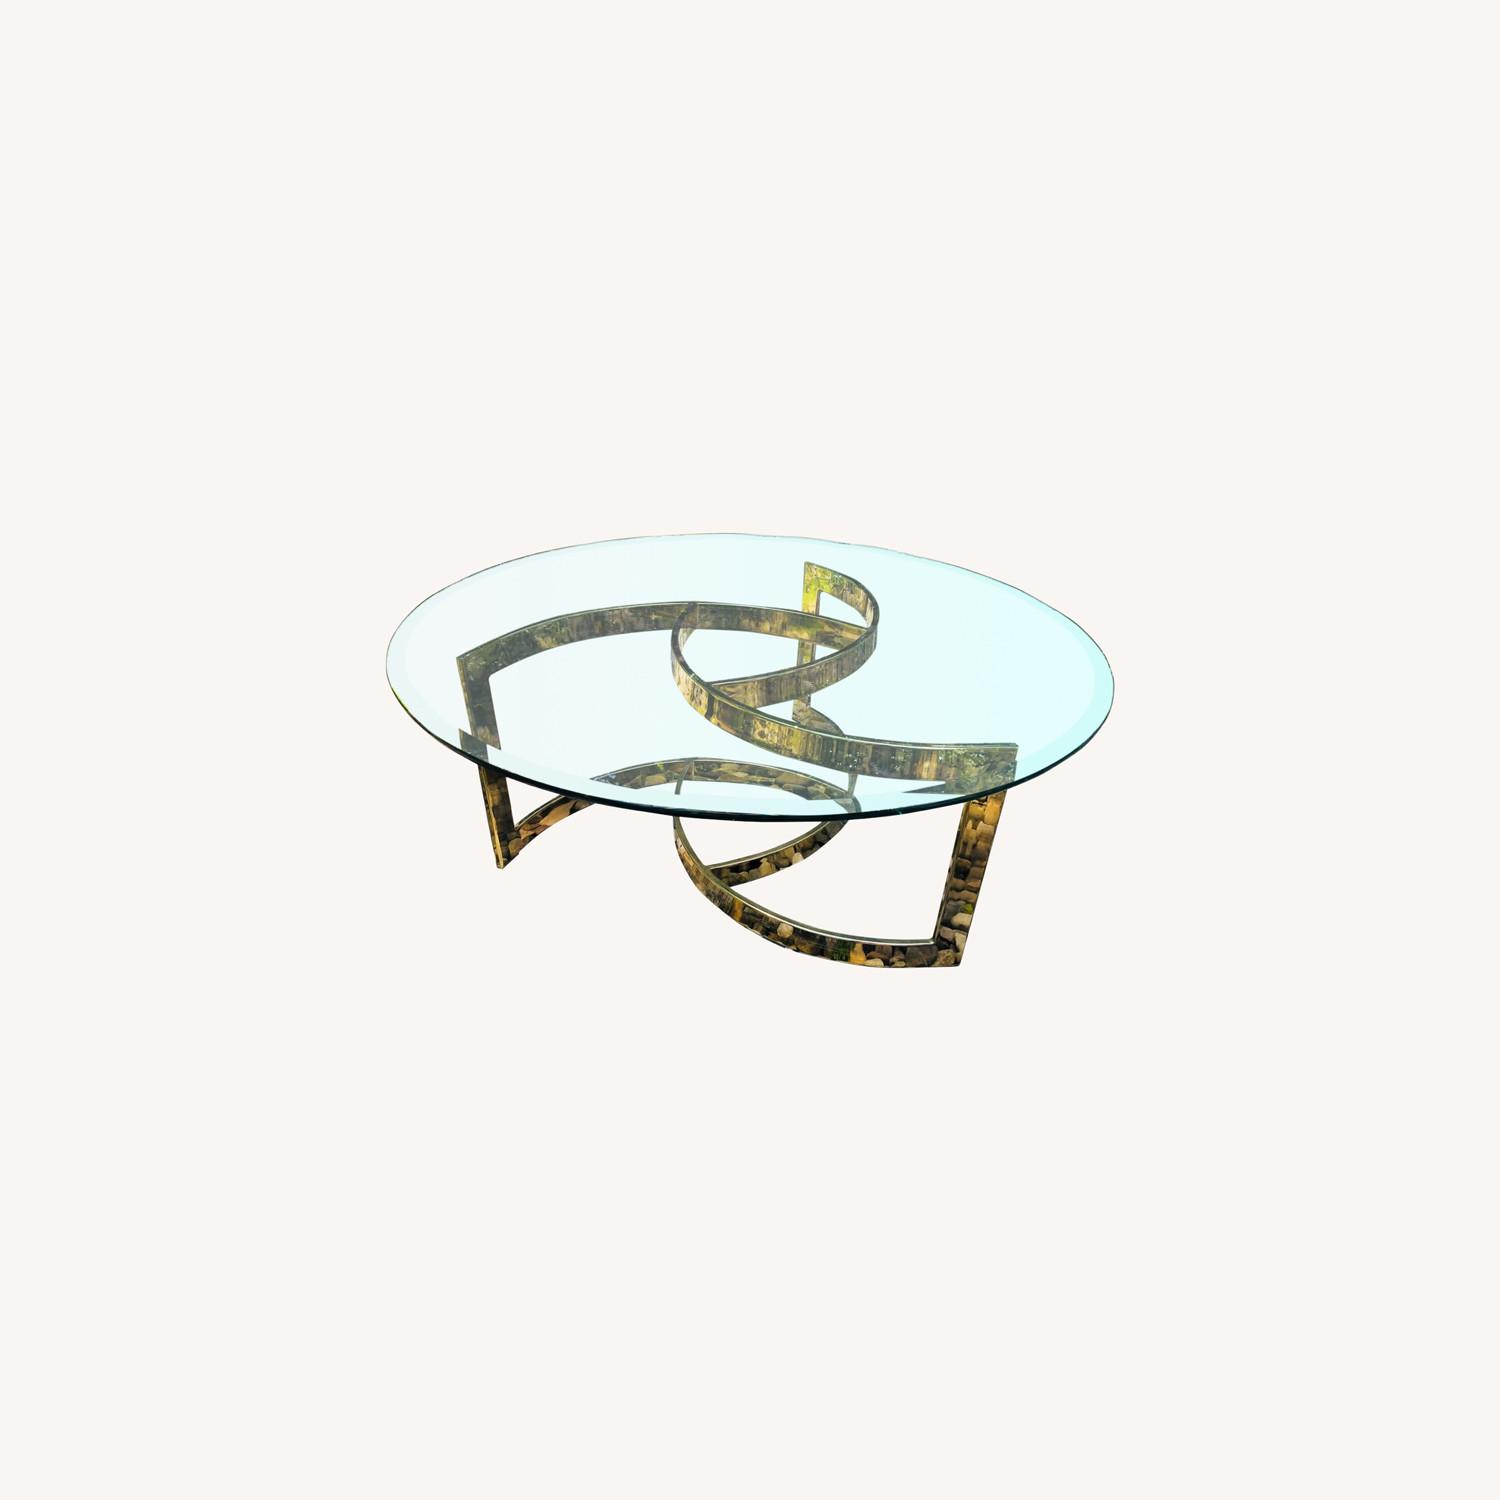 Vintage Brass and Glass Coffee Table Glam Mod - image-0